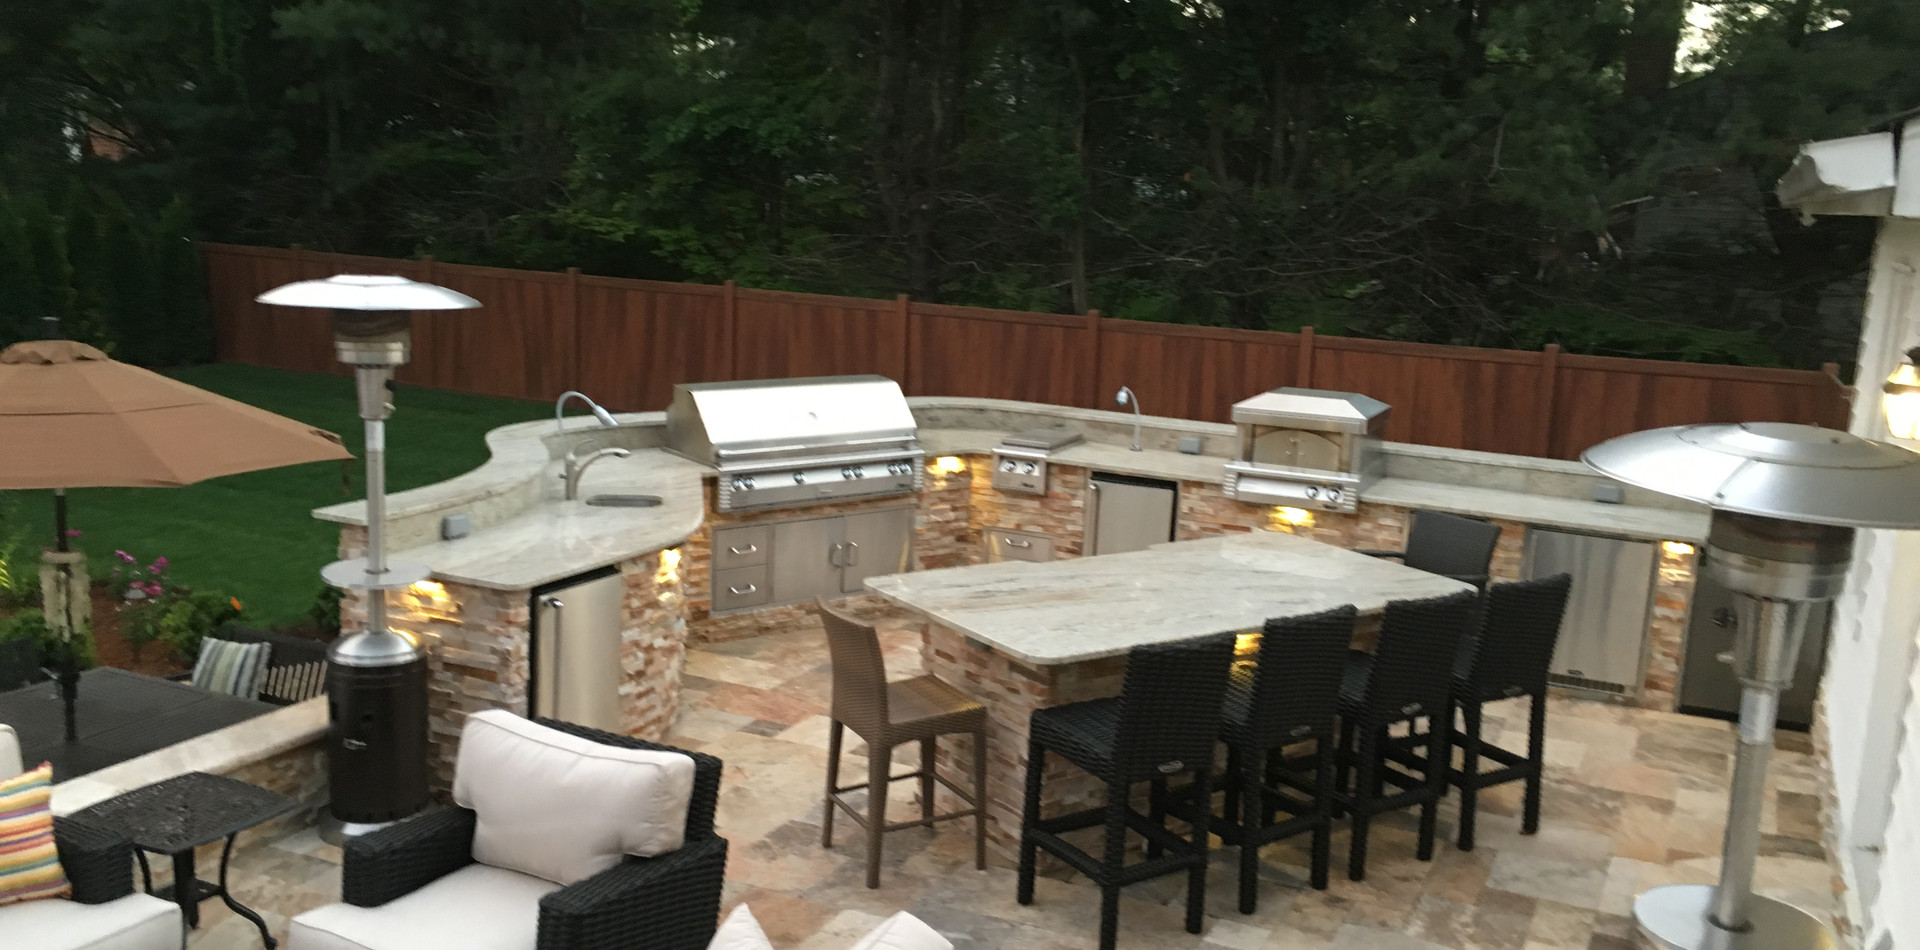 Outdoor Kitchen with bar seating